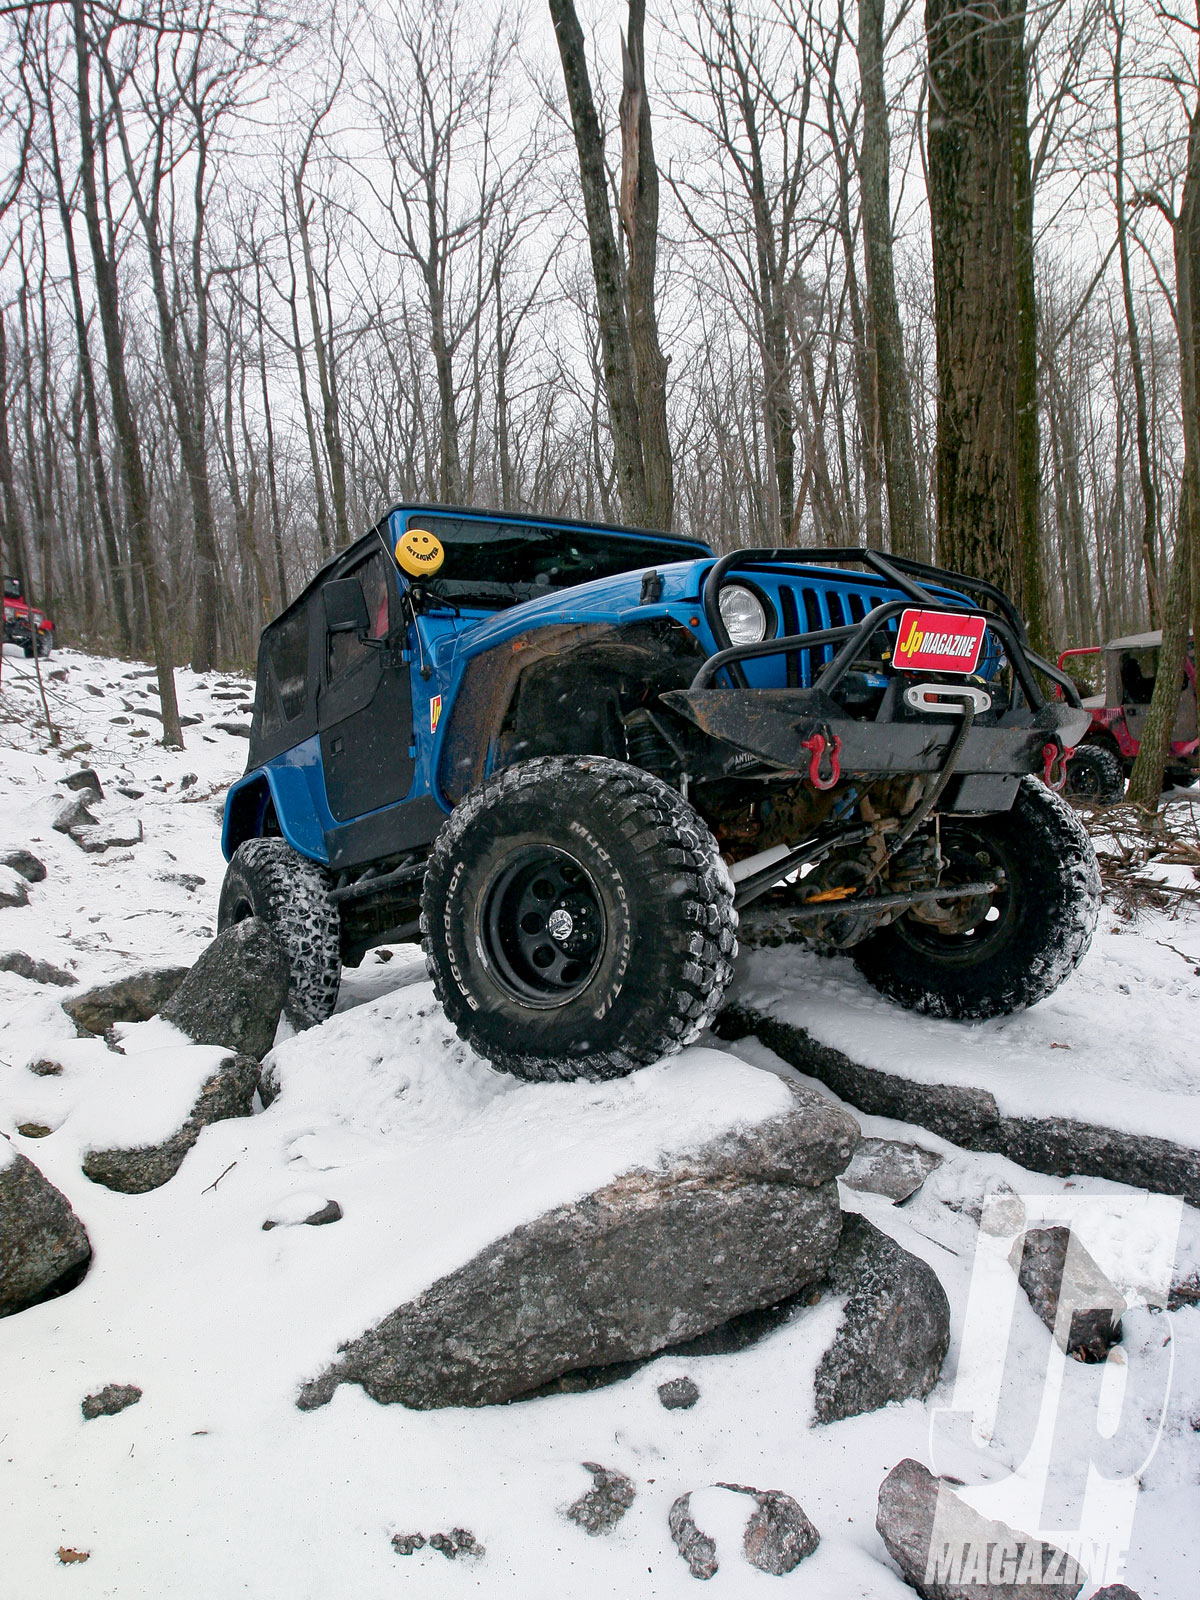 154 1103 02 o+154 1103 snow crawling rausch creek off road park+2003 jeep wrangler tj rubicon